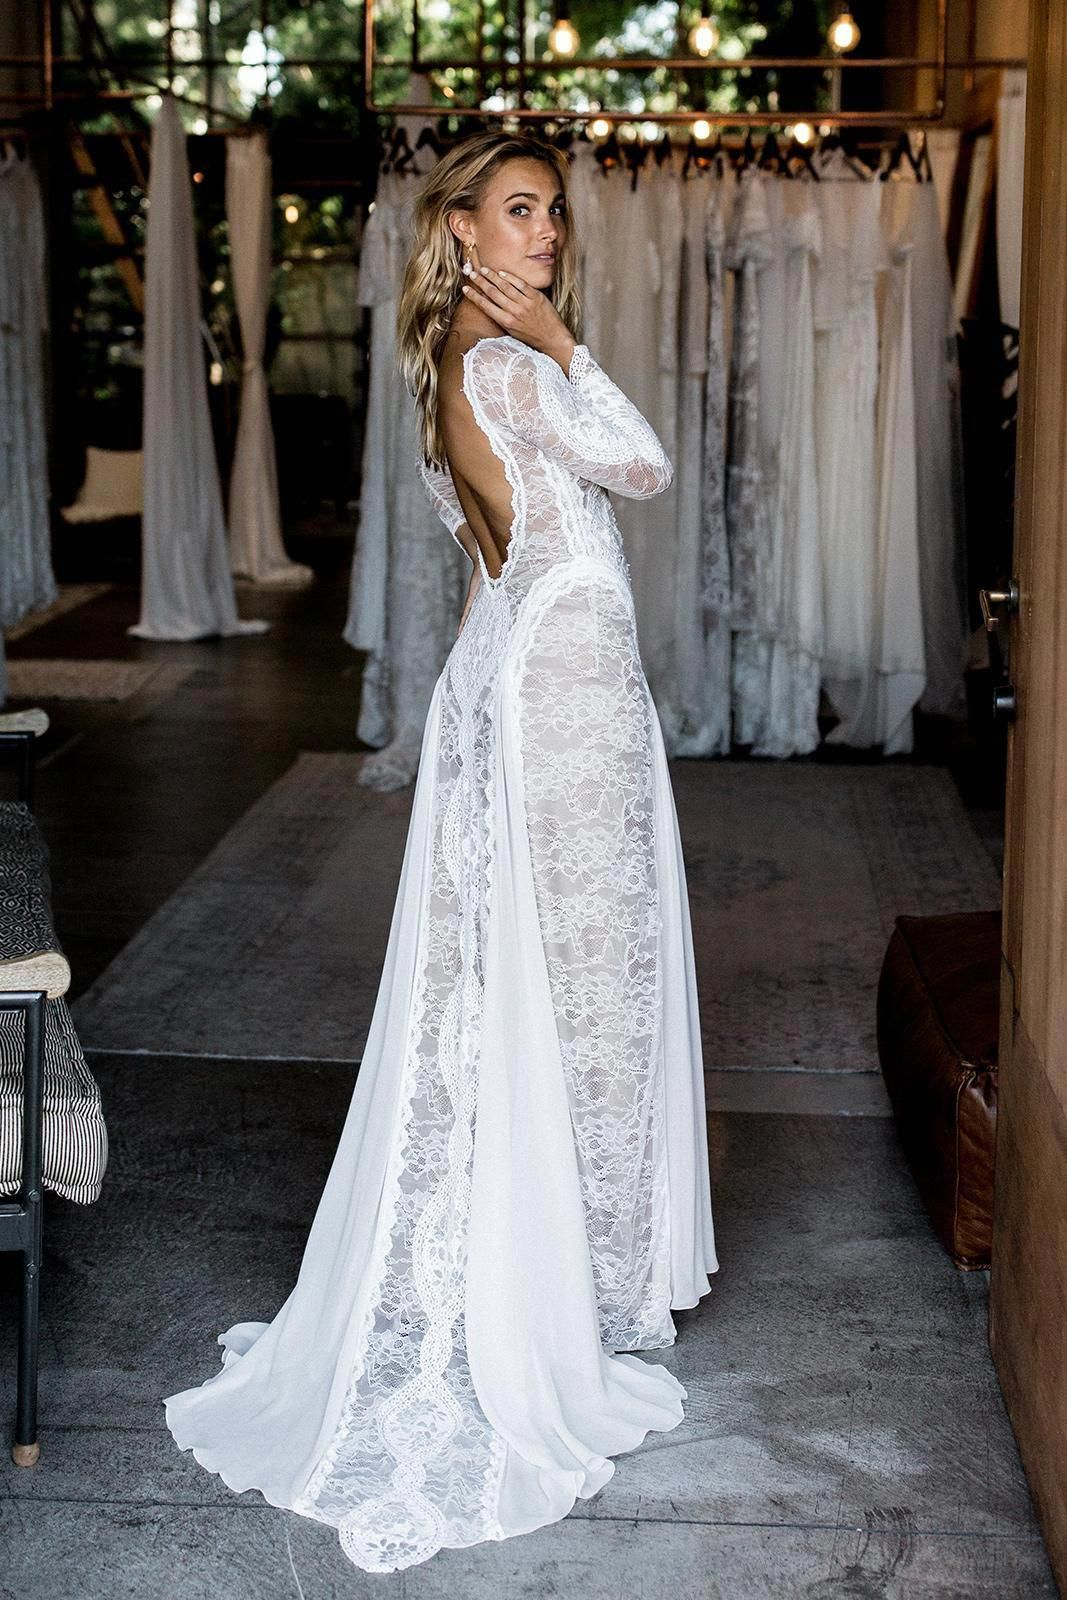 With A Unique Combination Of French And Japanese Lace Paired With A Flattering F Bohemian Wedding Dress Lace Wedding Gowns Lace Long Sleeve Wedding Dress Boho